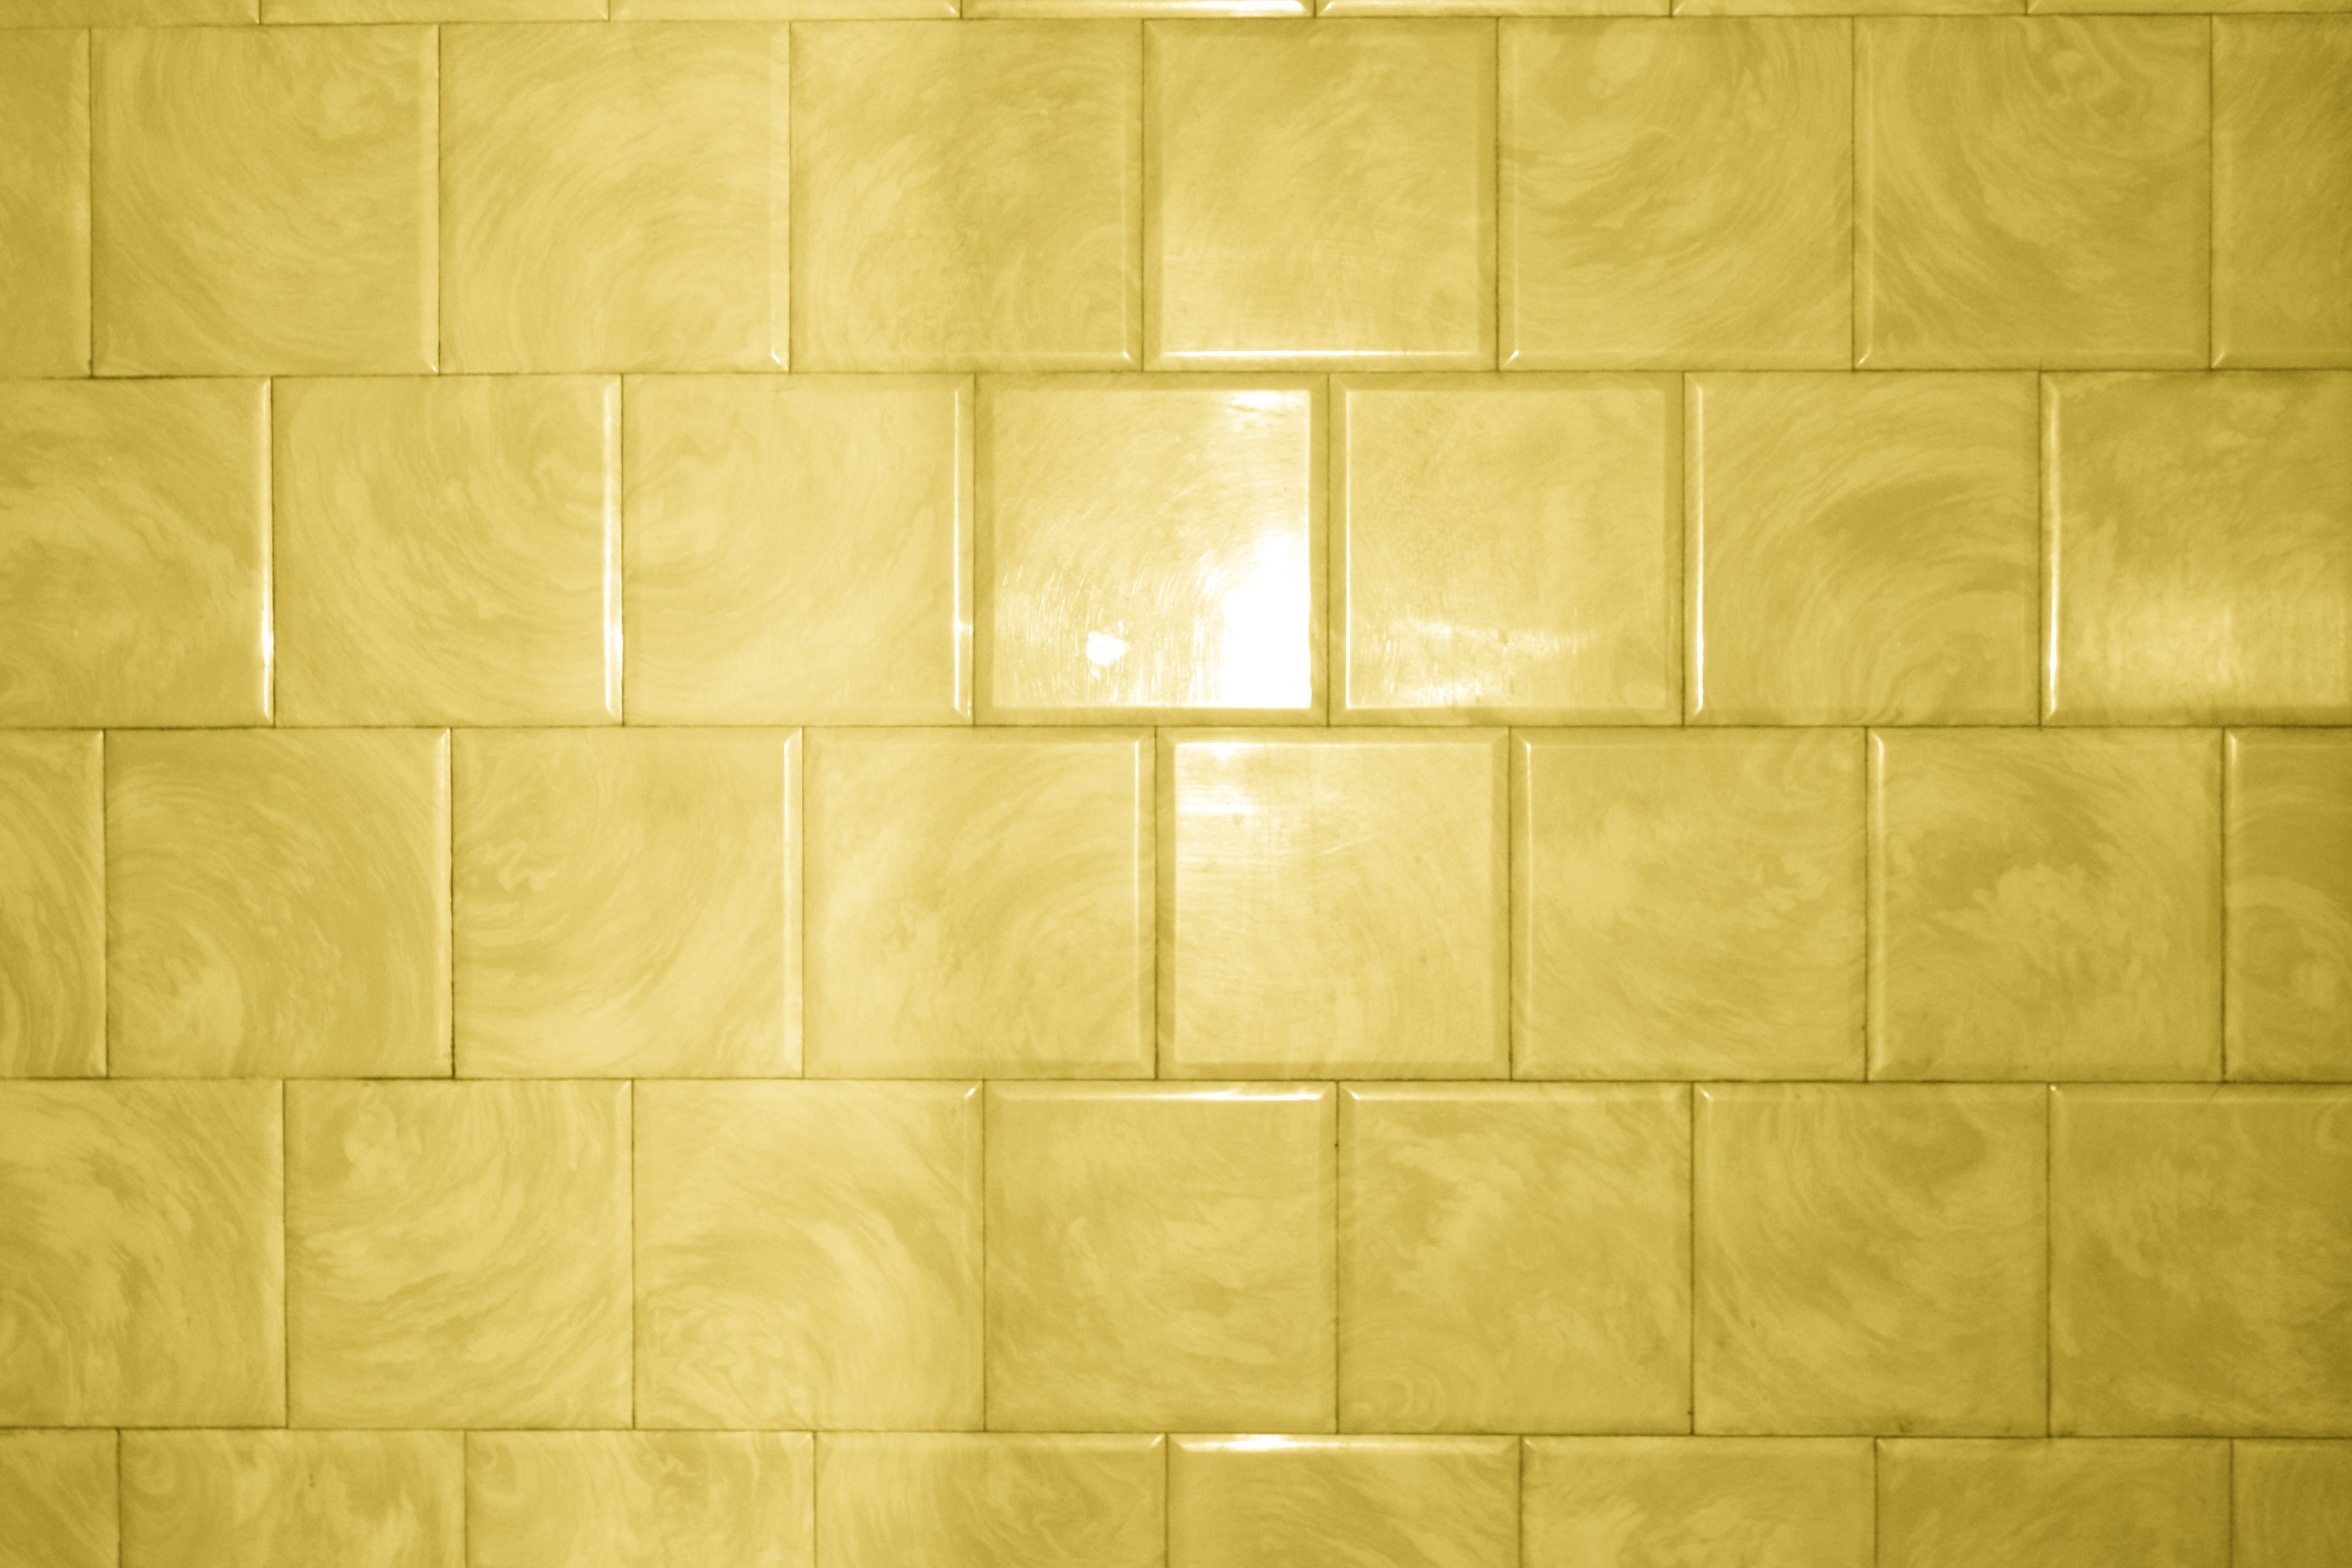 Yellow Bathroom Tile with Swirl Pattern Texture Picture | Free ...